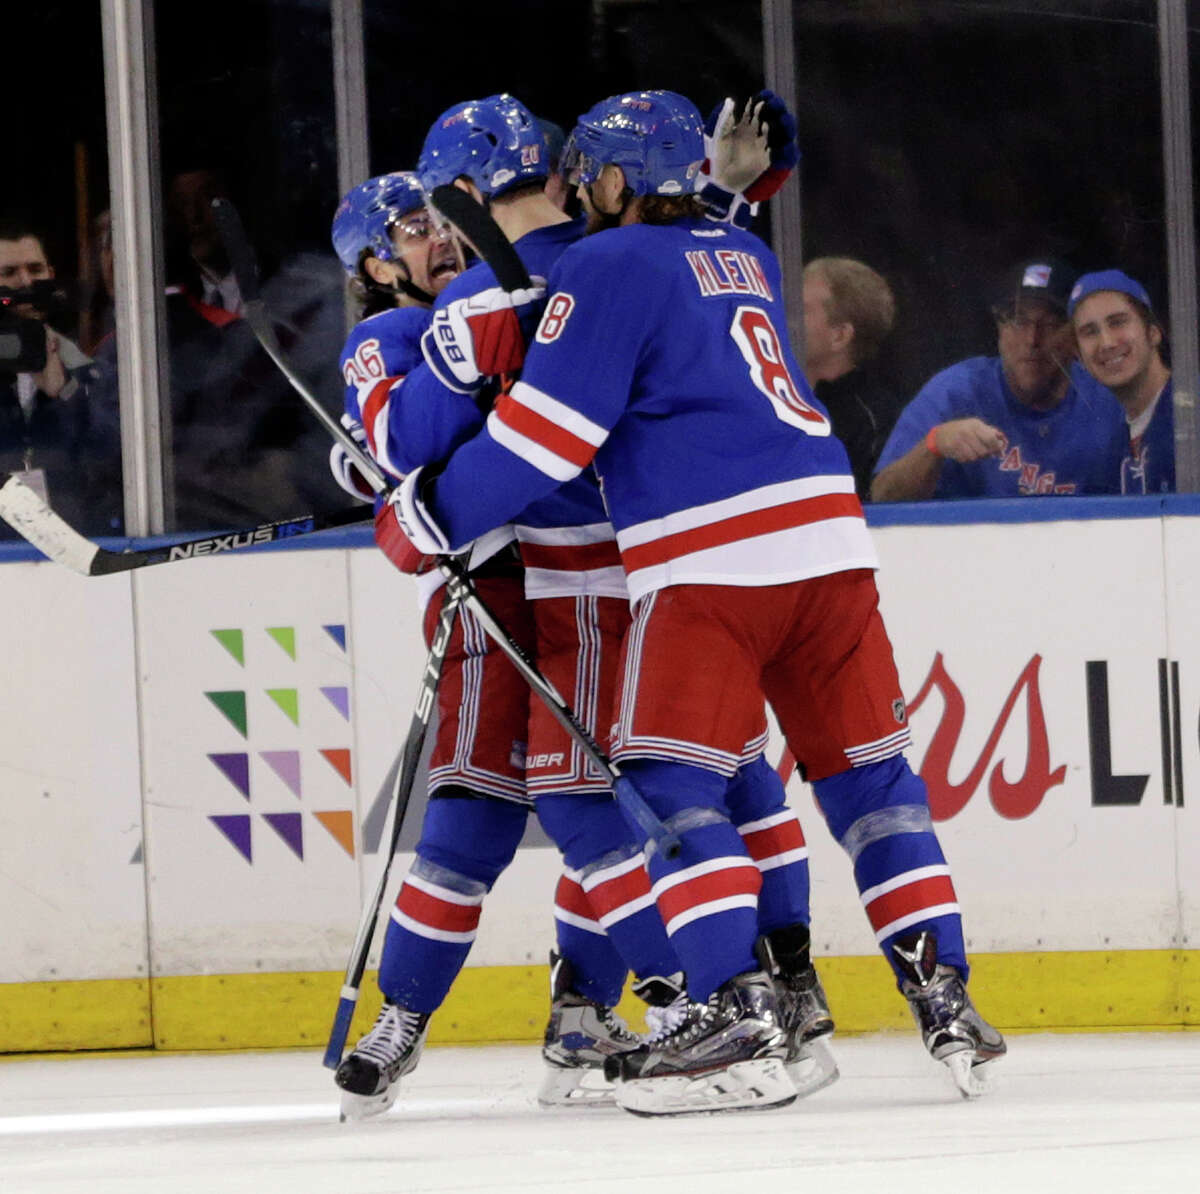 New York Rangers' Mats Zuccarello, left, celebrates with teammates after scoring the winning goal during the third period of the NHL hockey game against the Washington Capitals, Sunday, Feb. 19, 2017, in New York. (AP Photo/Seth Wenig) ORG XMIT: NYSW108